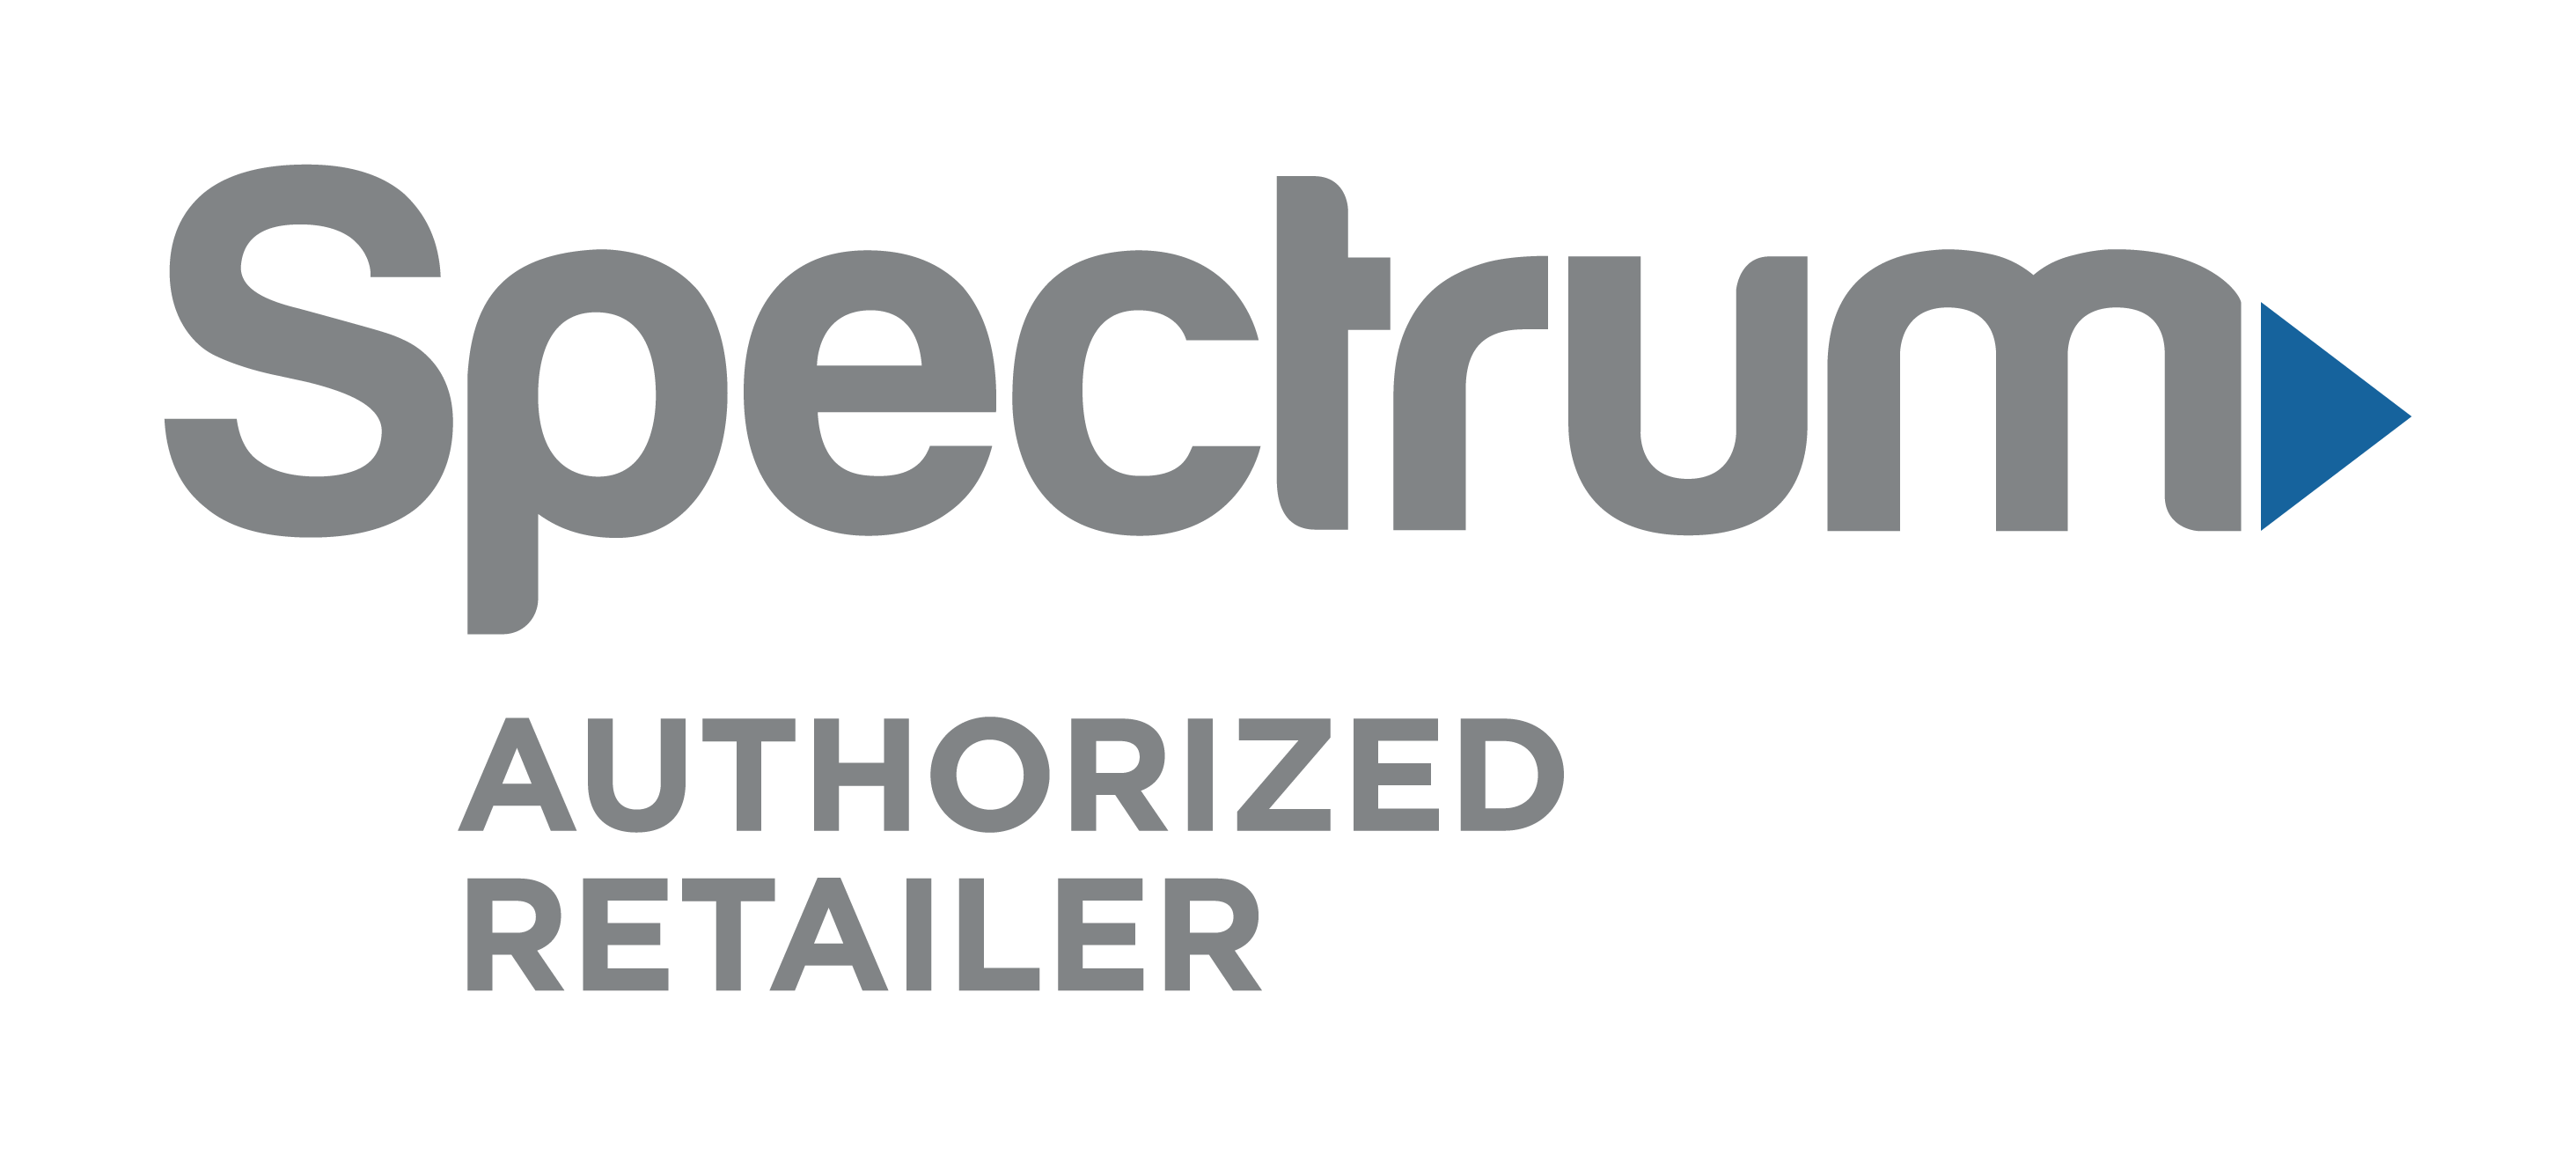 What Is Spectrum?